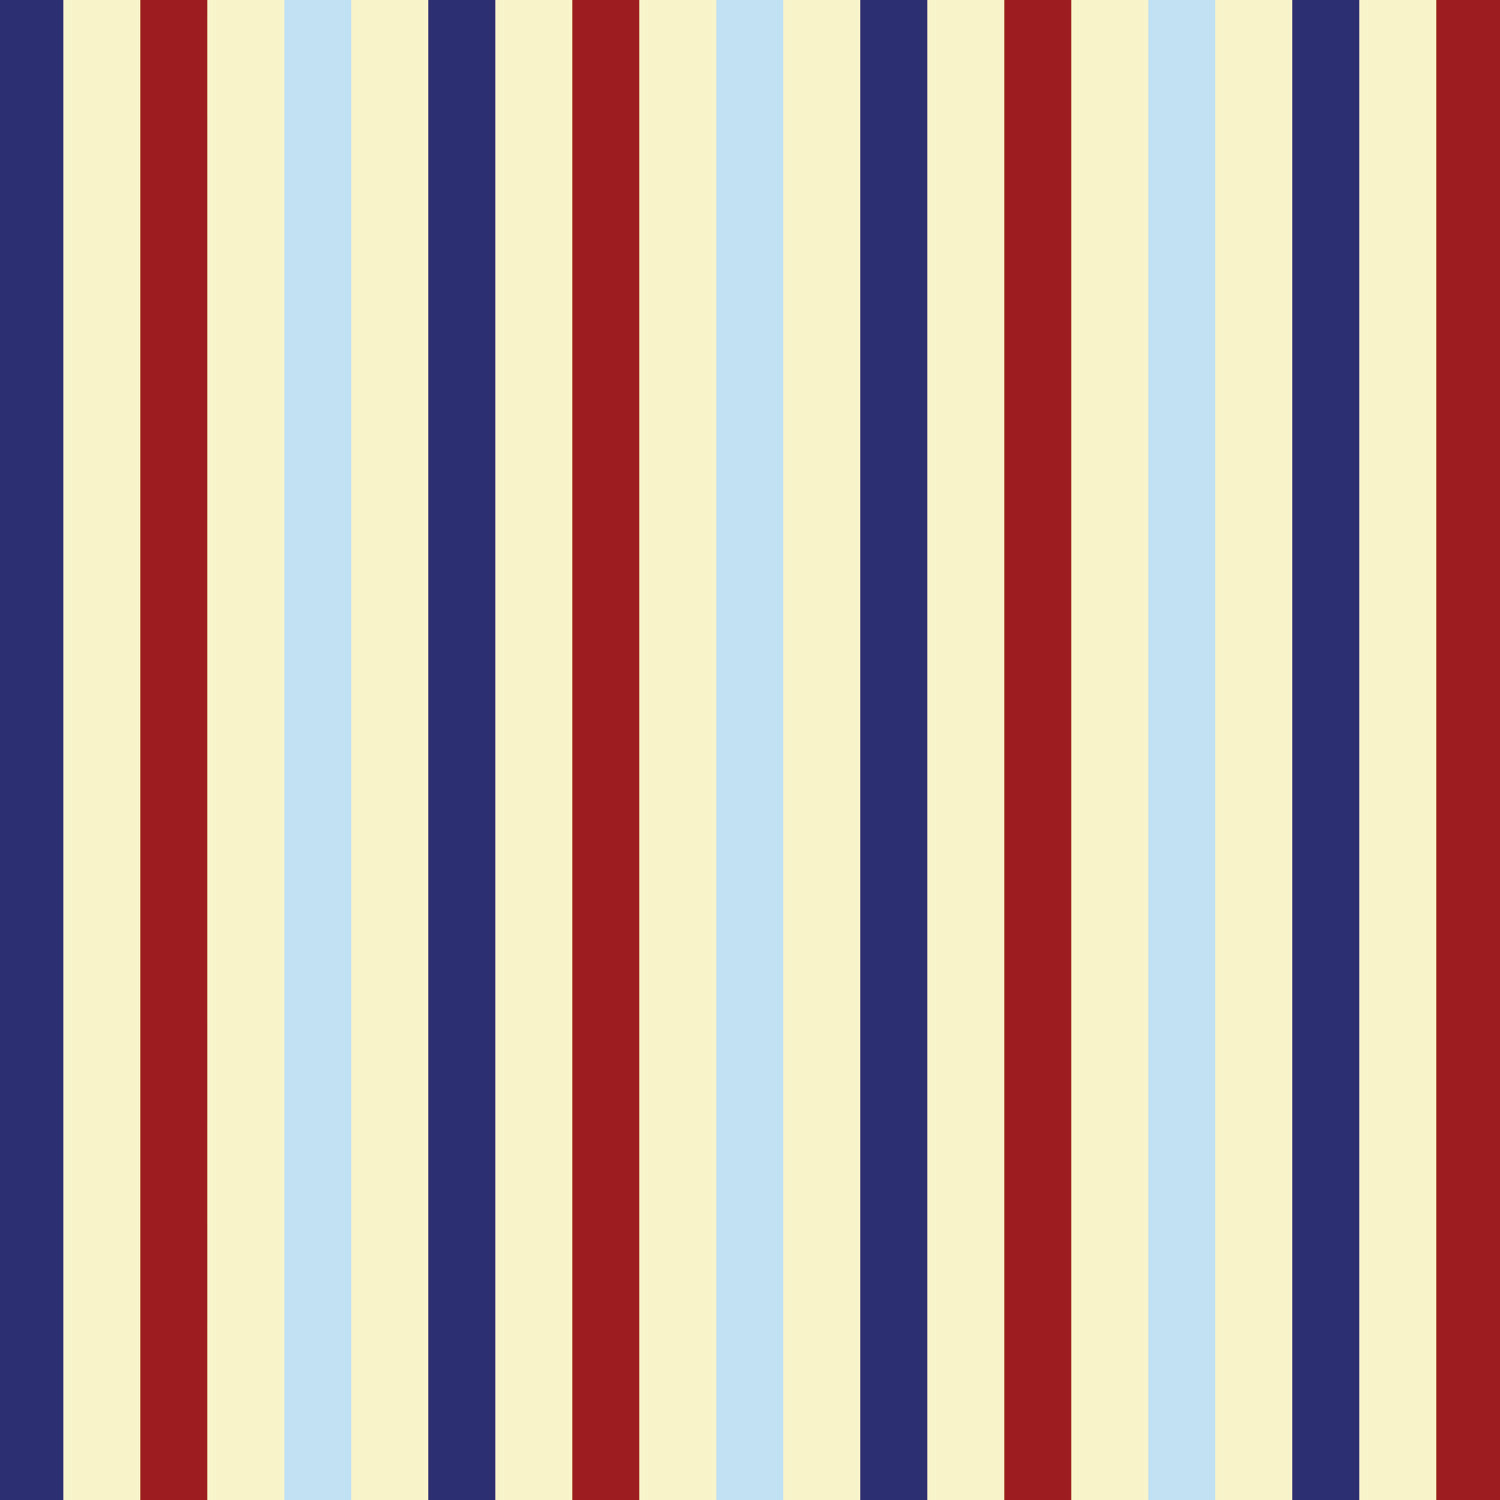 Vertical Striped Navy Blue Red and Beige Curtain Panels 151  Eloquent Innovations